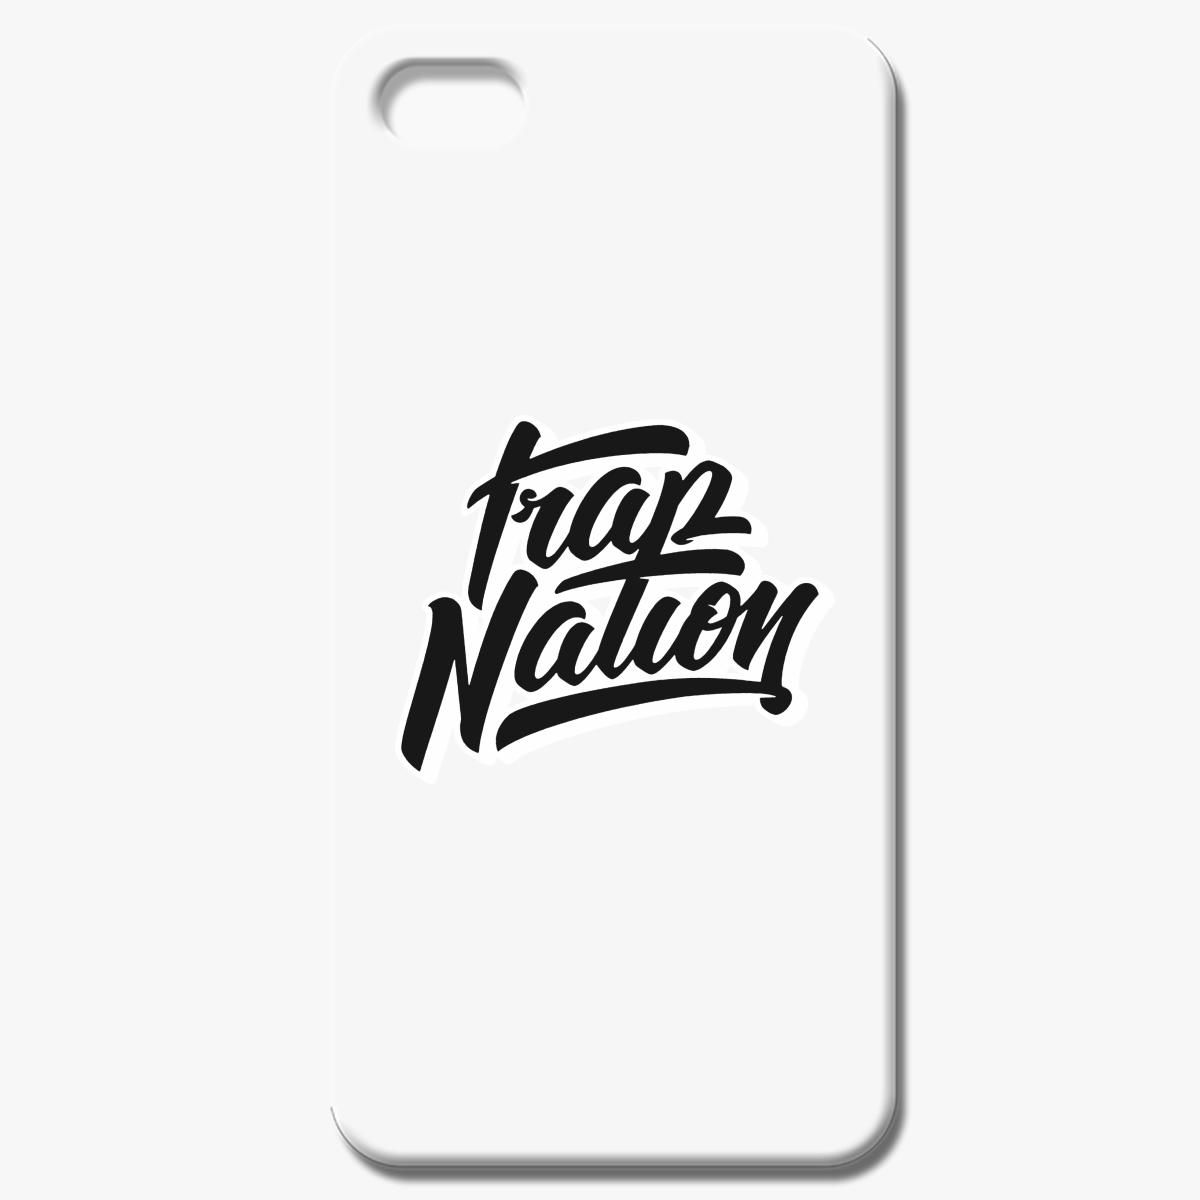 Trap Nation Iphone 7 Case